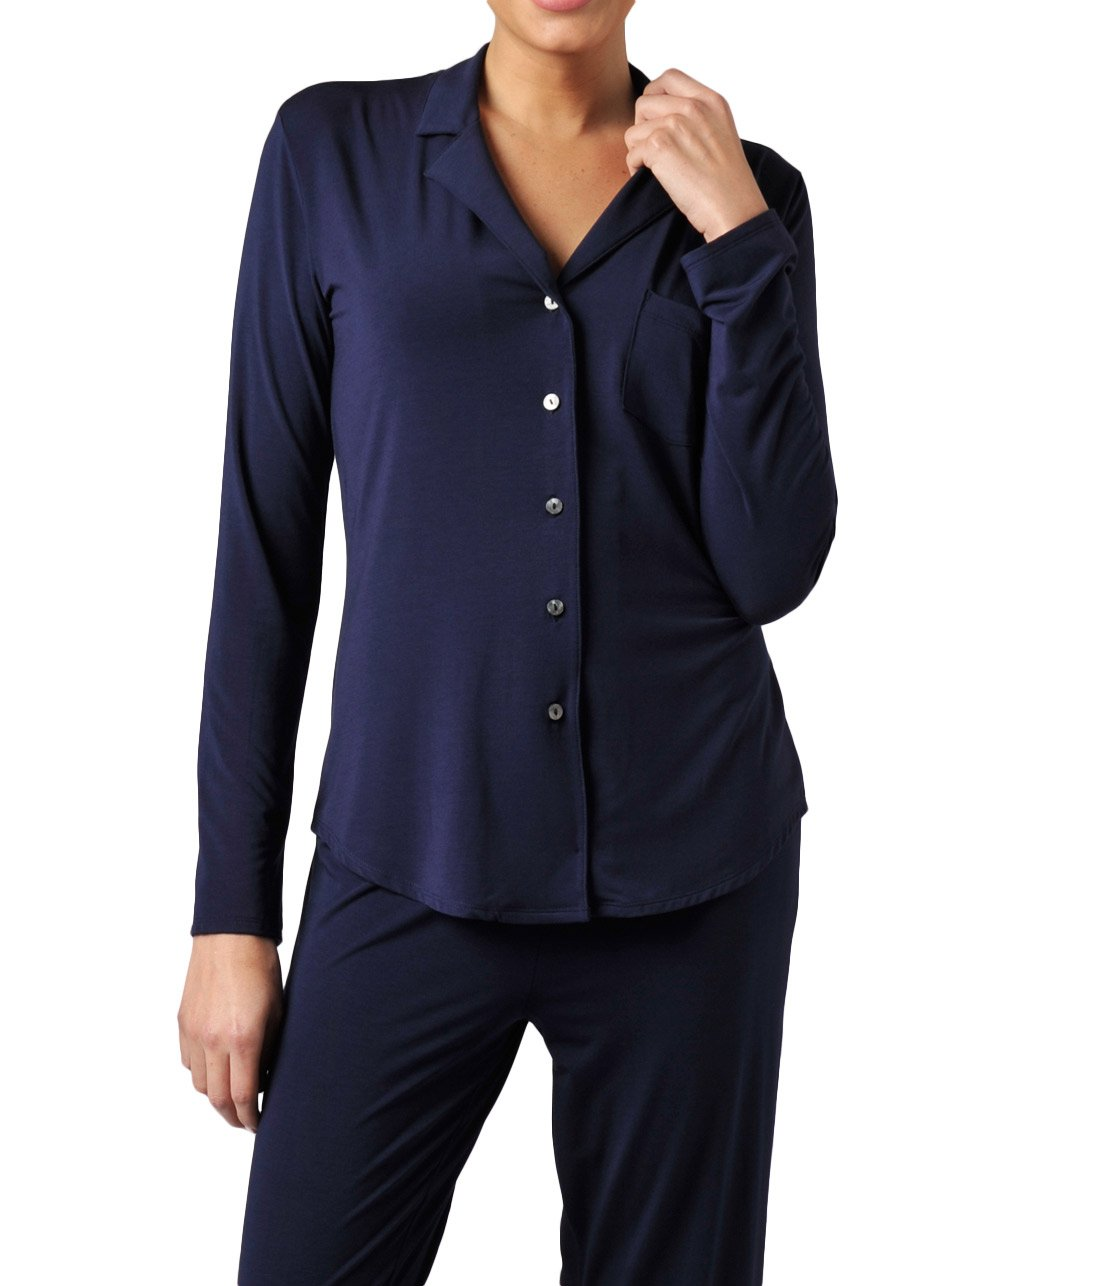 Naked Women's MicroModal Luxury Pajama Set - Sleepwear & Loungewear For Women - Peacoat, Small